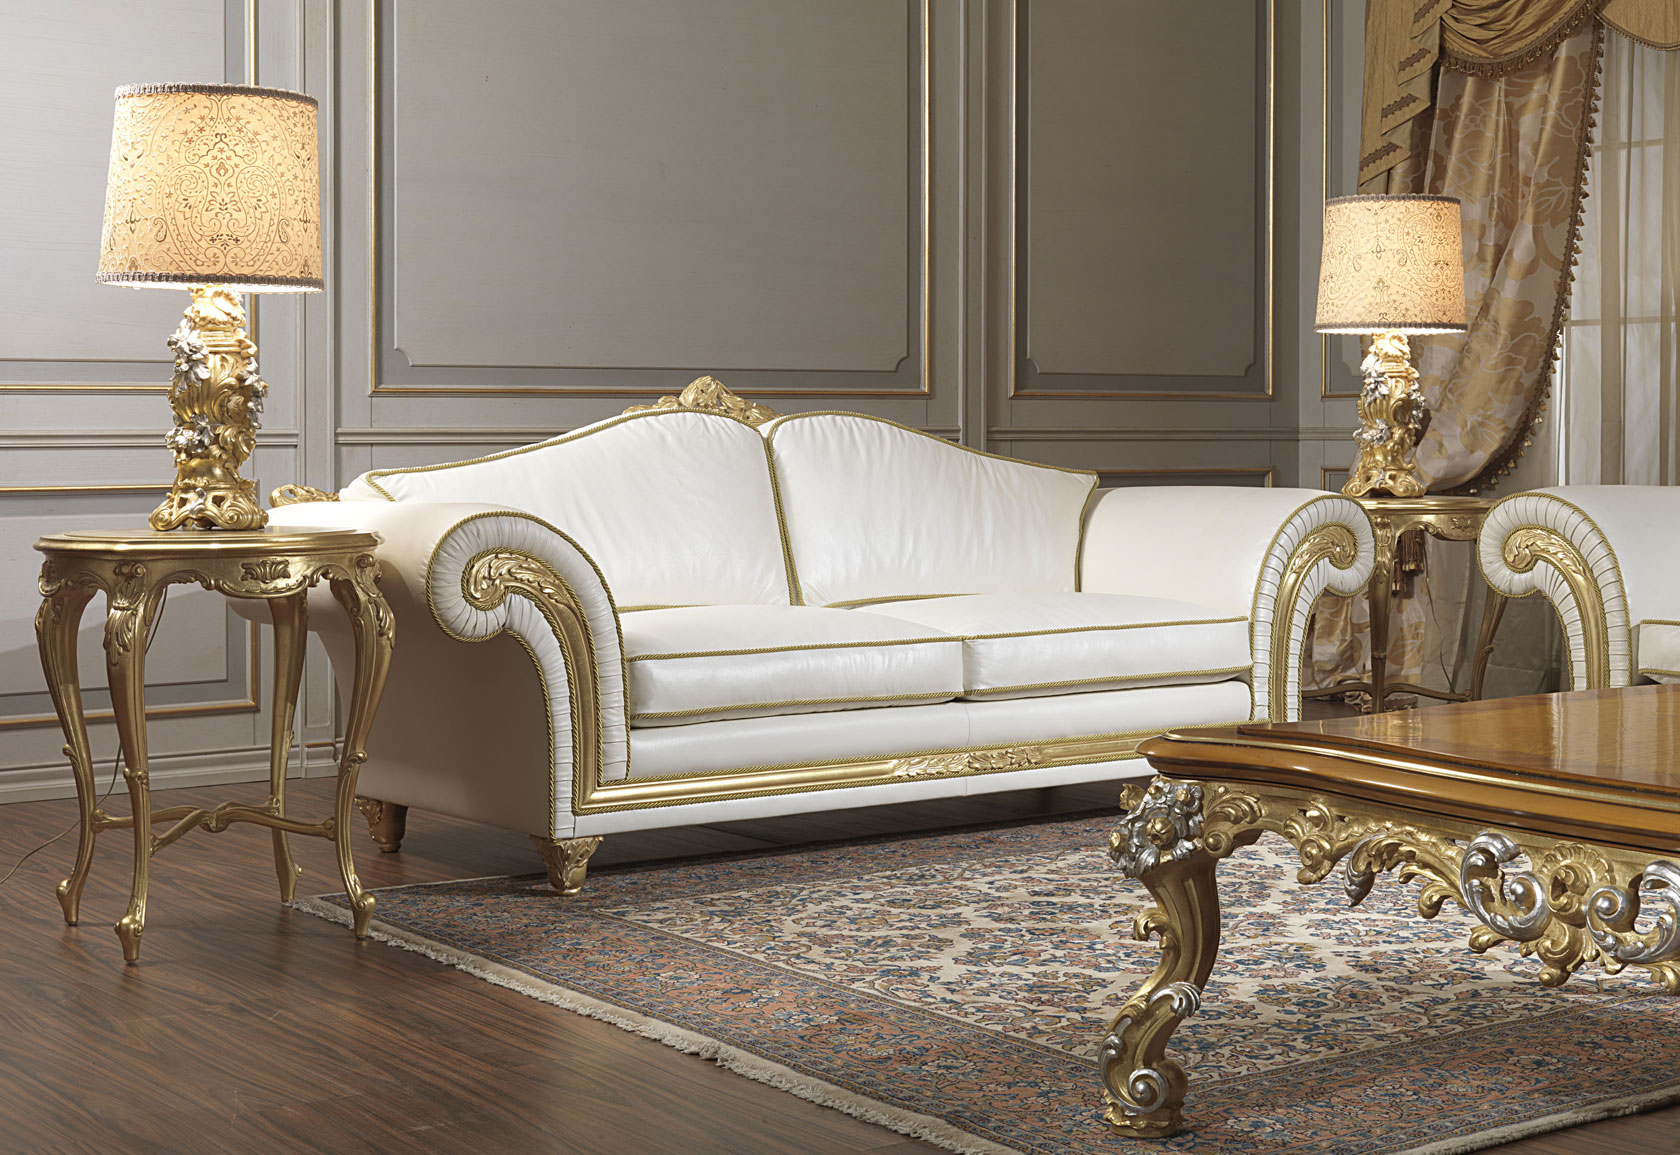 Classic sofa imperial in white leather vimercati classic for Classic design furniture